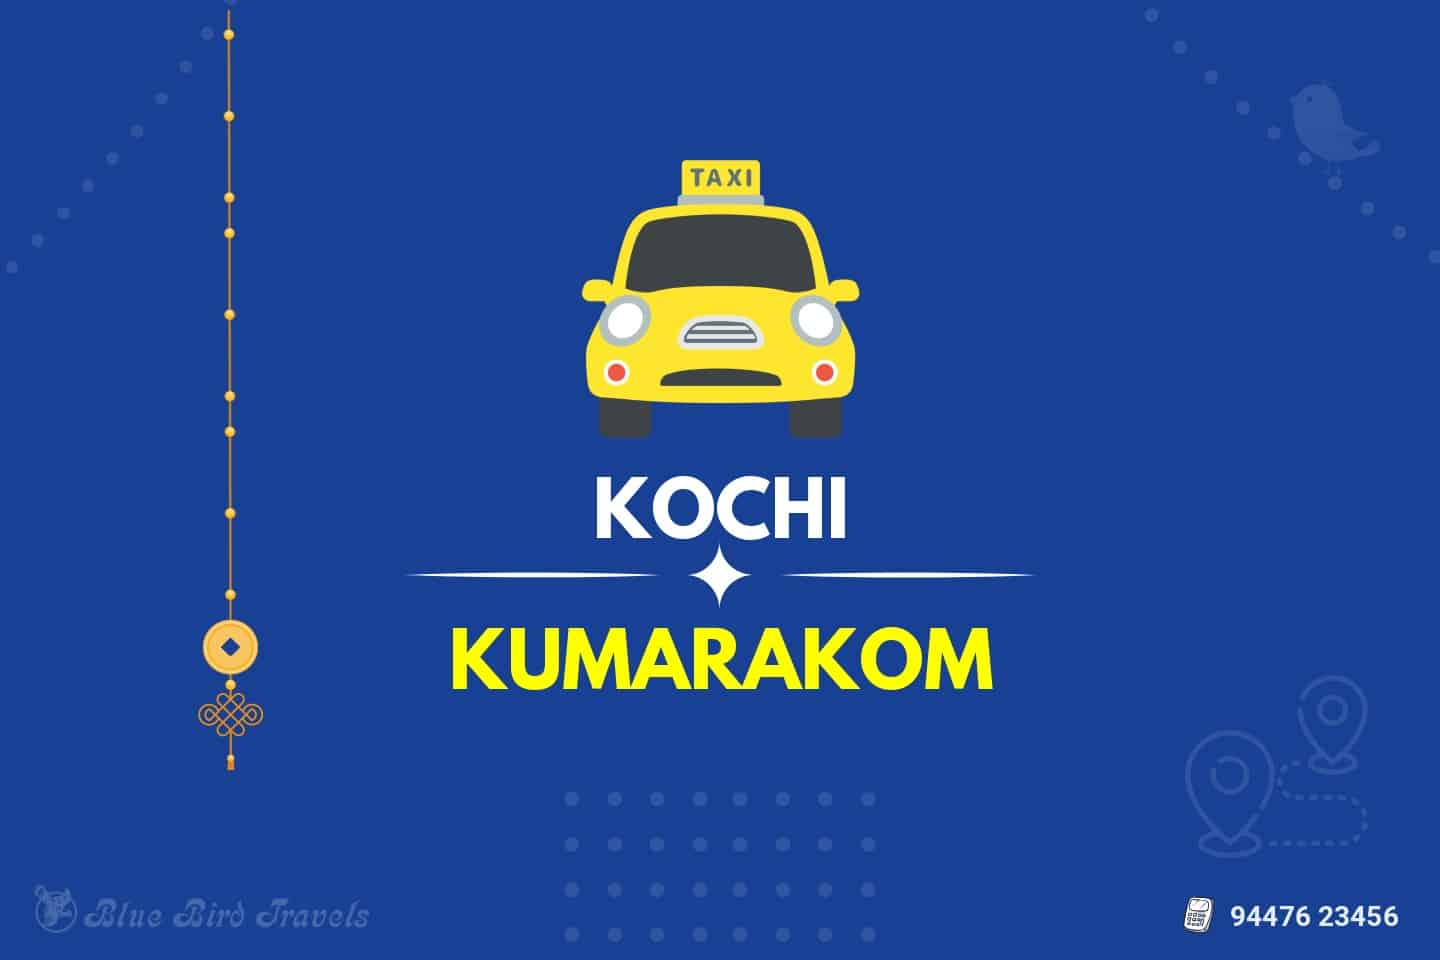 Kochi to Kumarakom Taxi( Featured image)